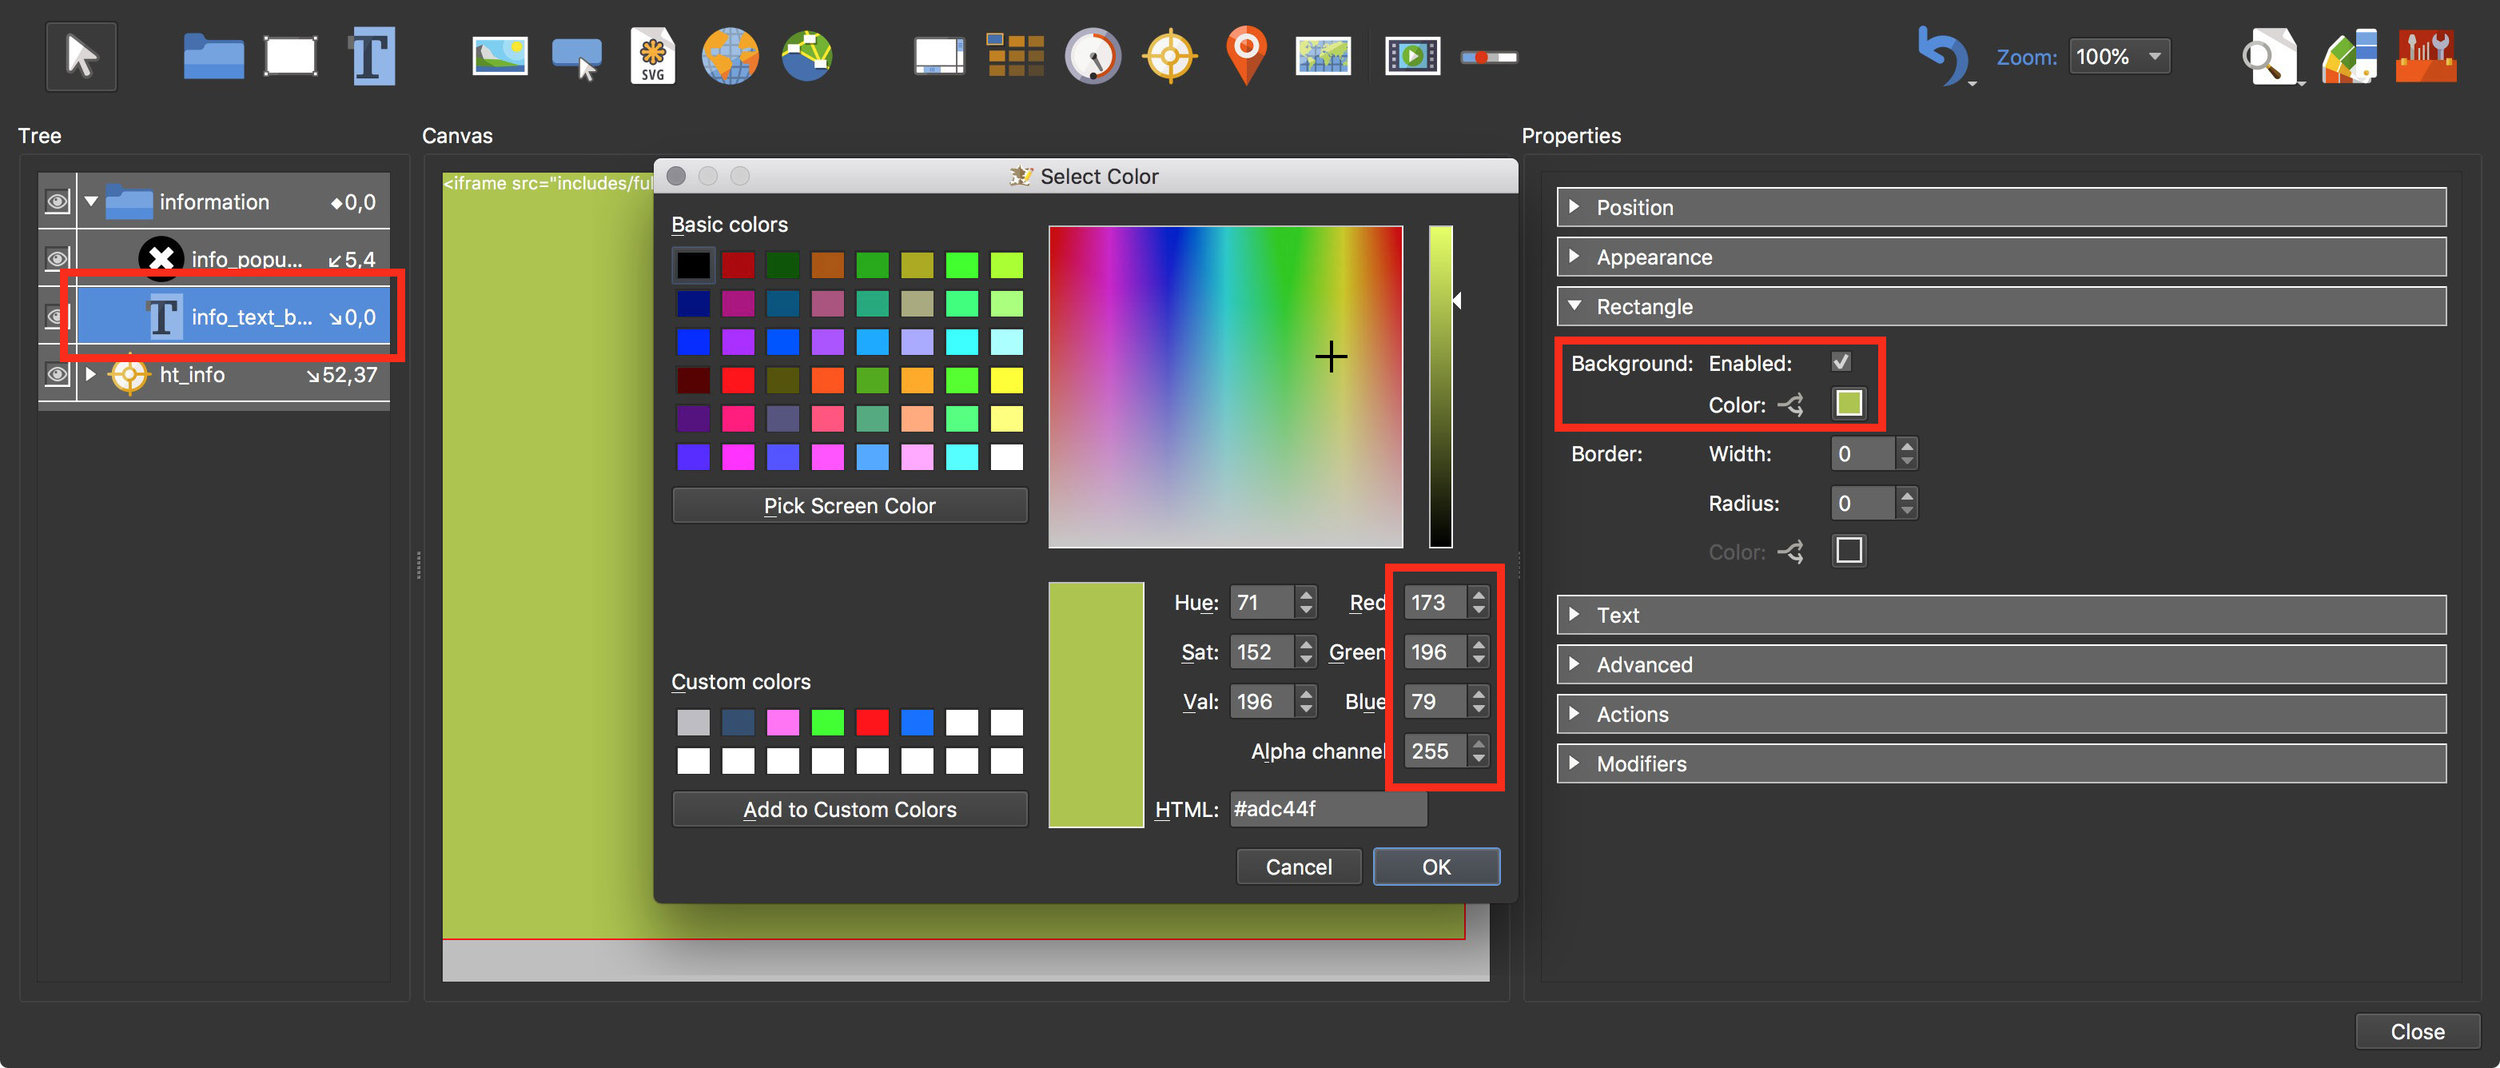 Figure #30: Assign a background color to the info_text_body element